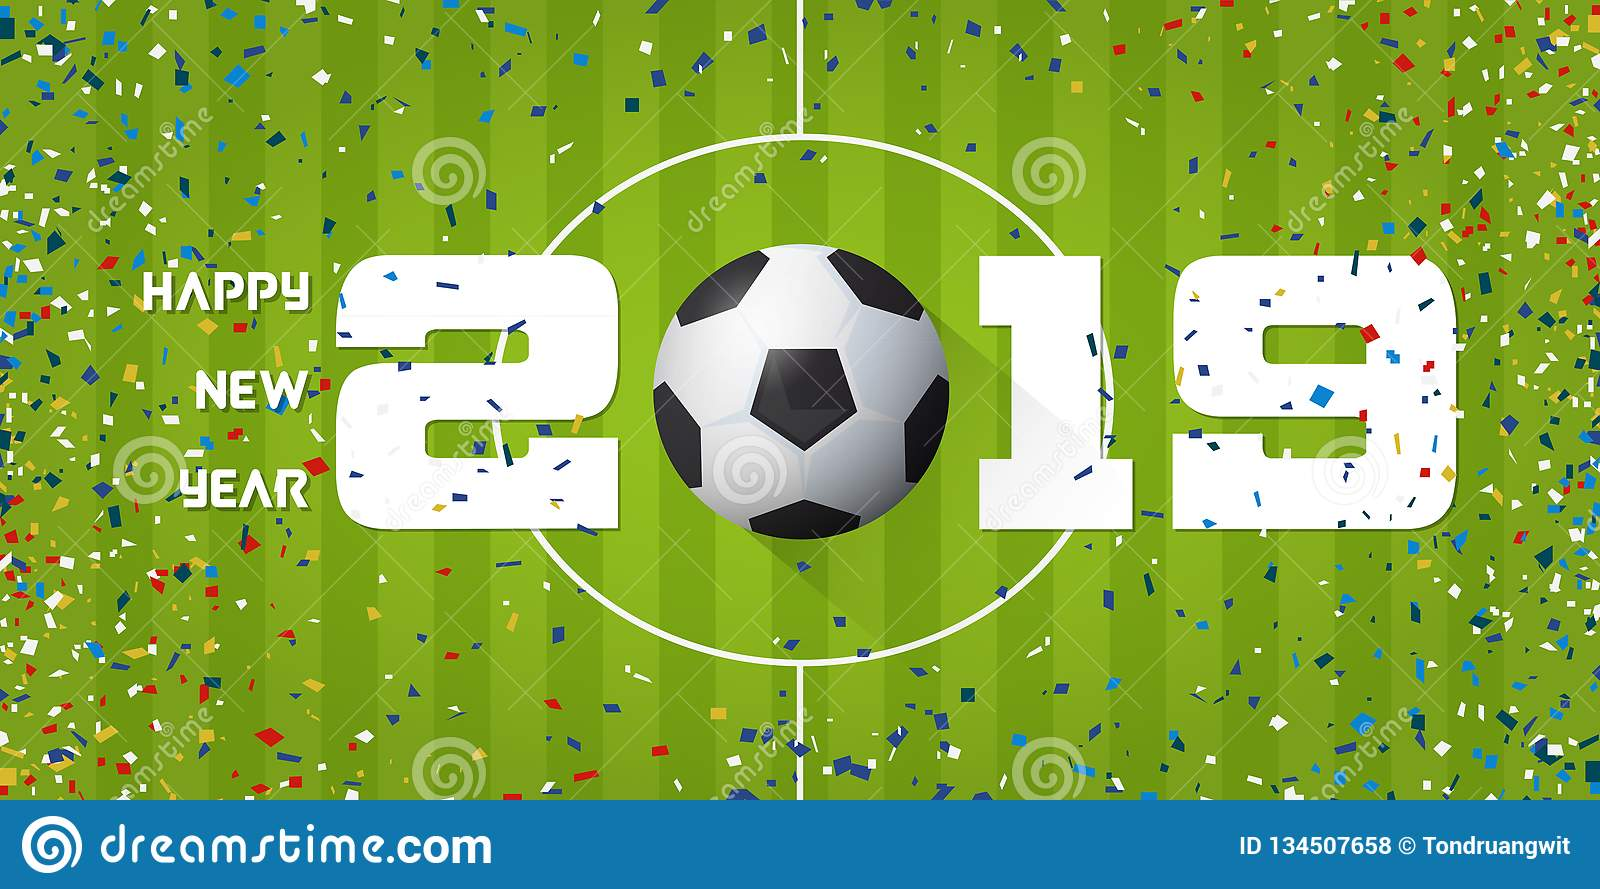 Happy New Year 2019 Banner With Soccer Ball And Paper Confetti On